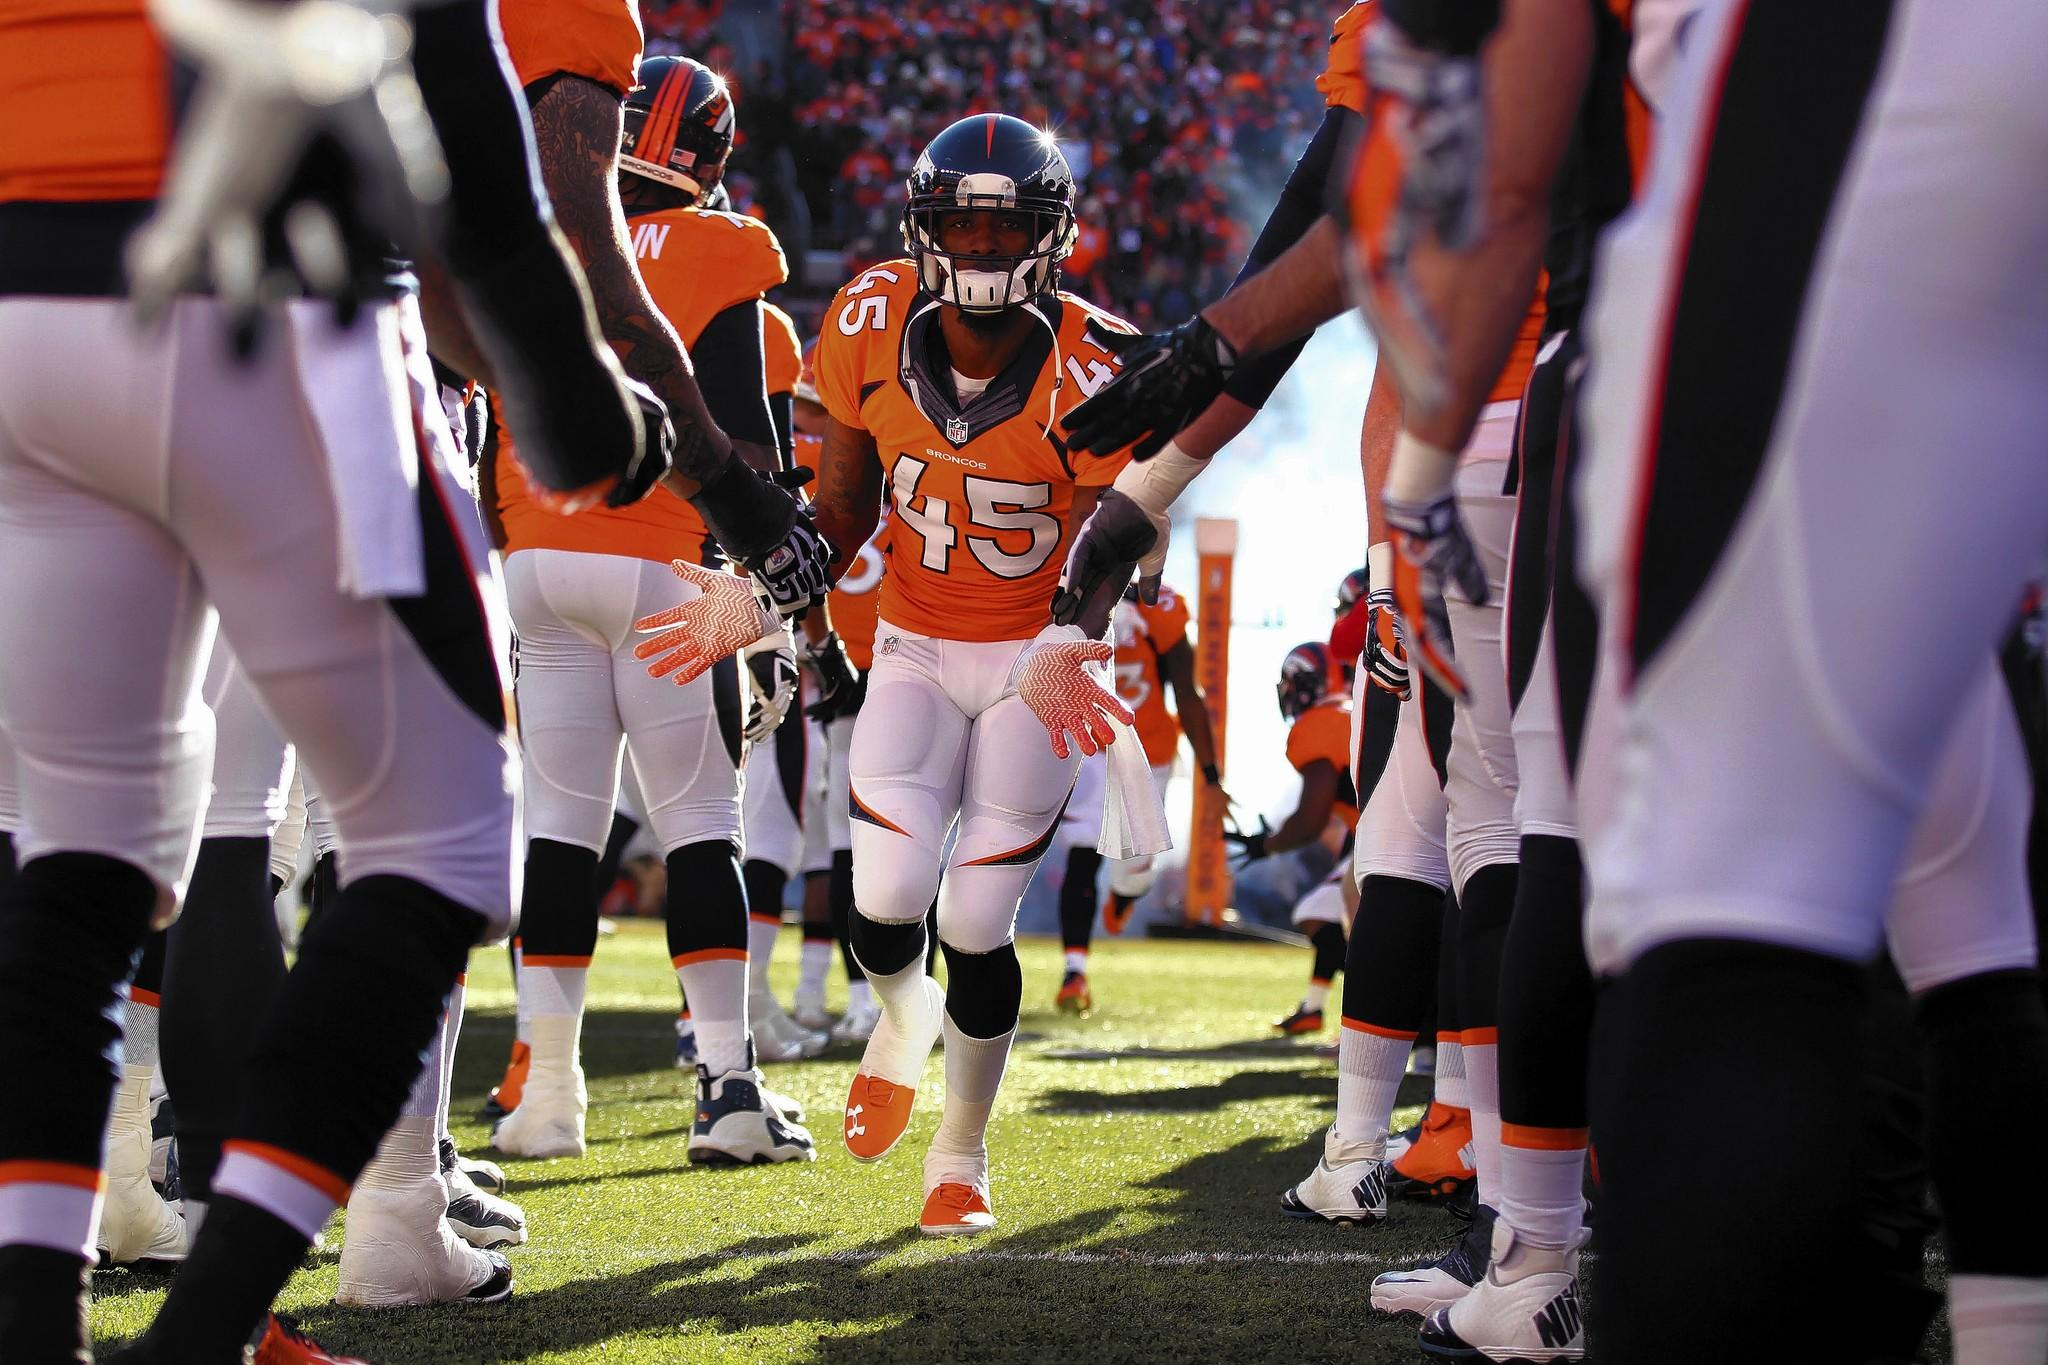 Dominique Rodgers-Cromartie #45 of the Denver Broncos runs on the field prior to their AFC Divisional Playoff Game against the San Diego Chargers at Sports Authority Field at Mile High on January 12, 2014 in Denver, Colorado.